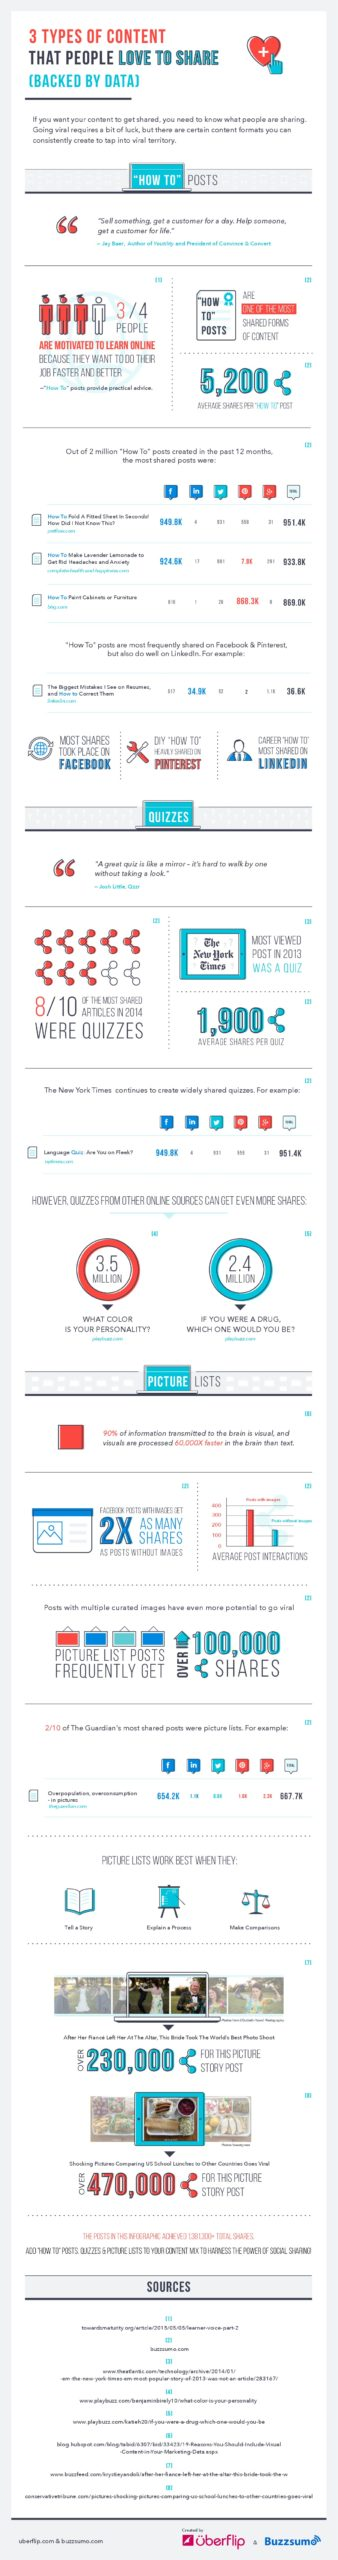 The 3 Types of Content People Love to Share [Data-Packed Infographic]-2